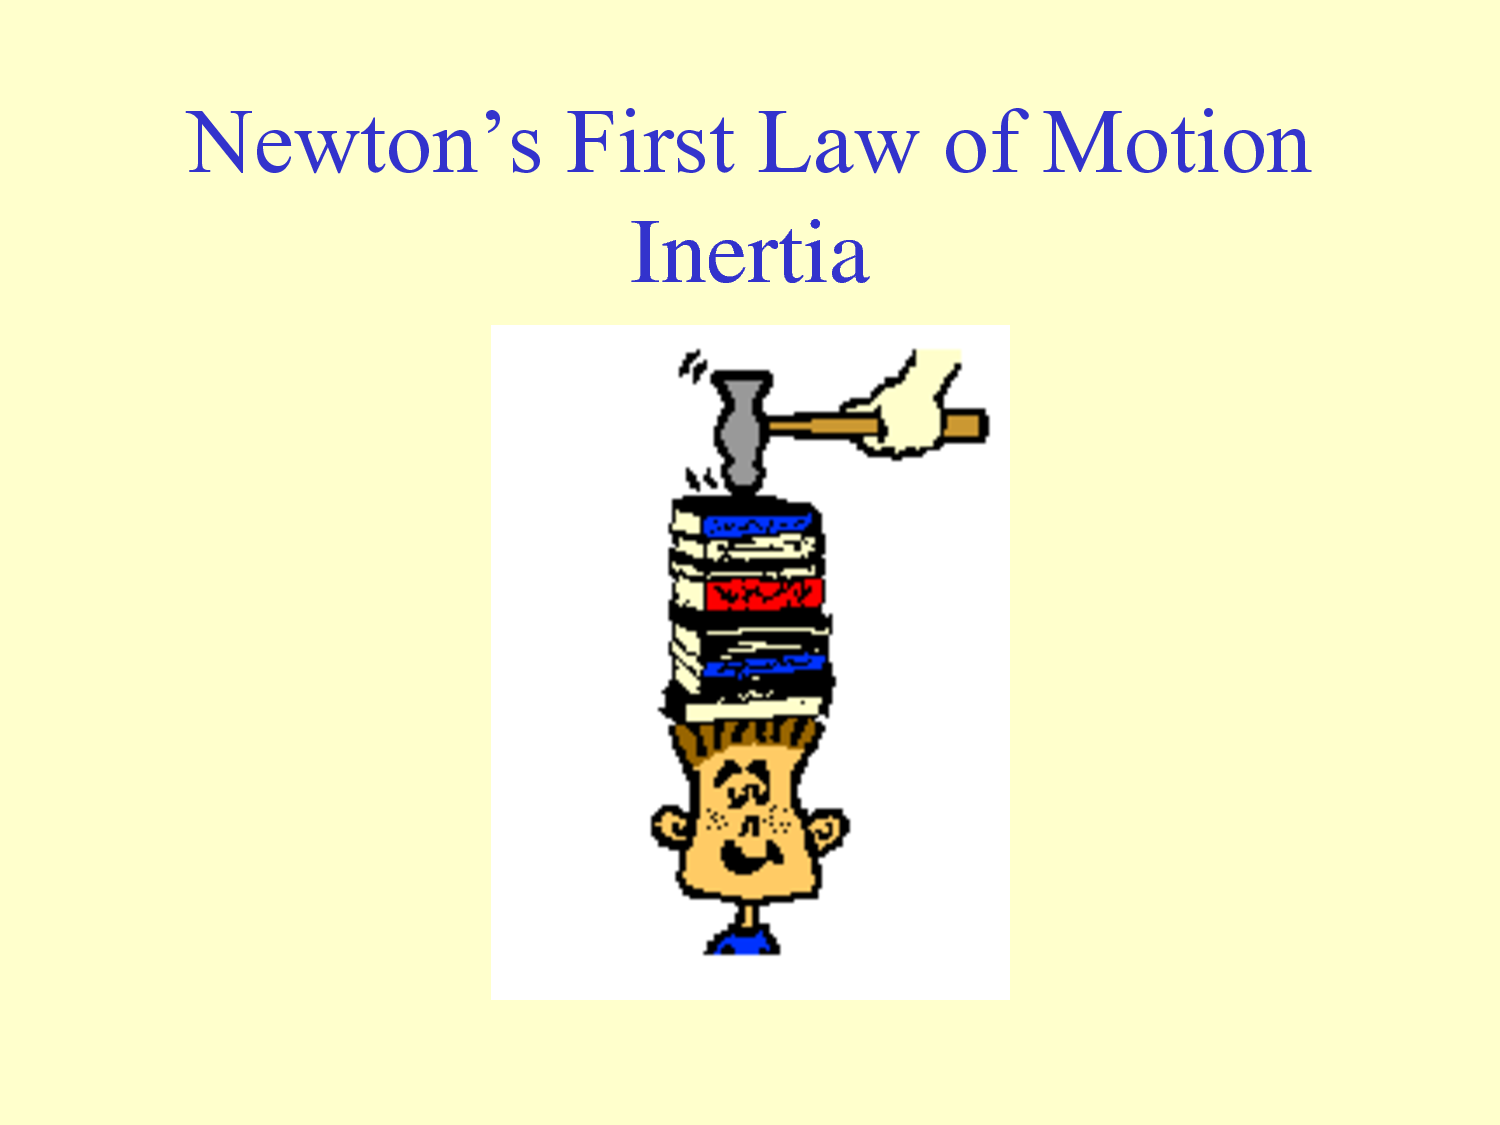 Newton S First Law Descirbes Motion And Interia And How